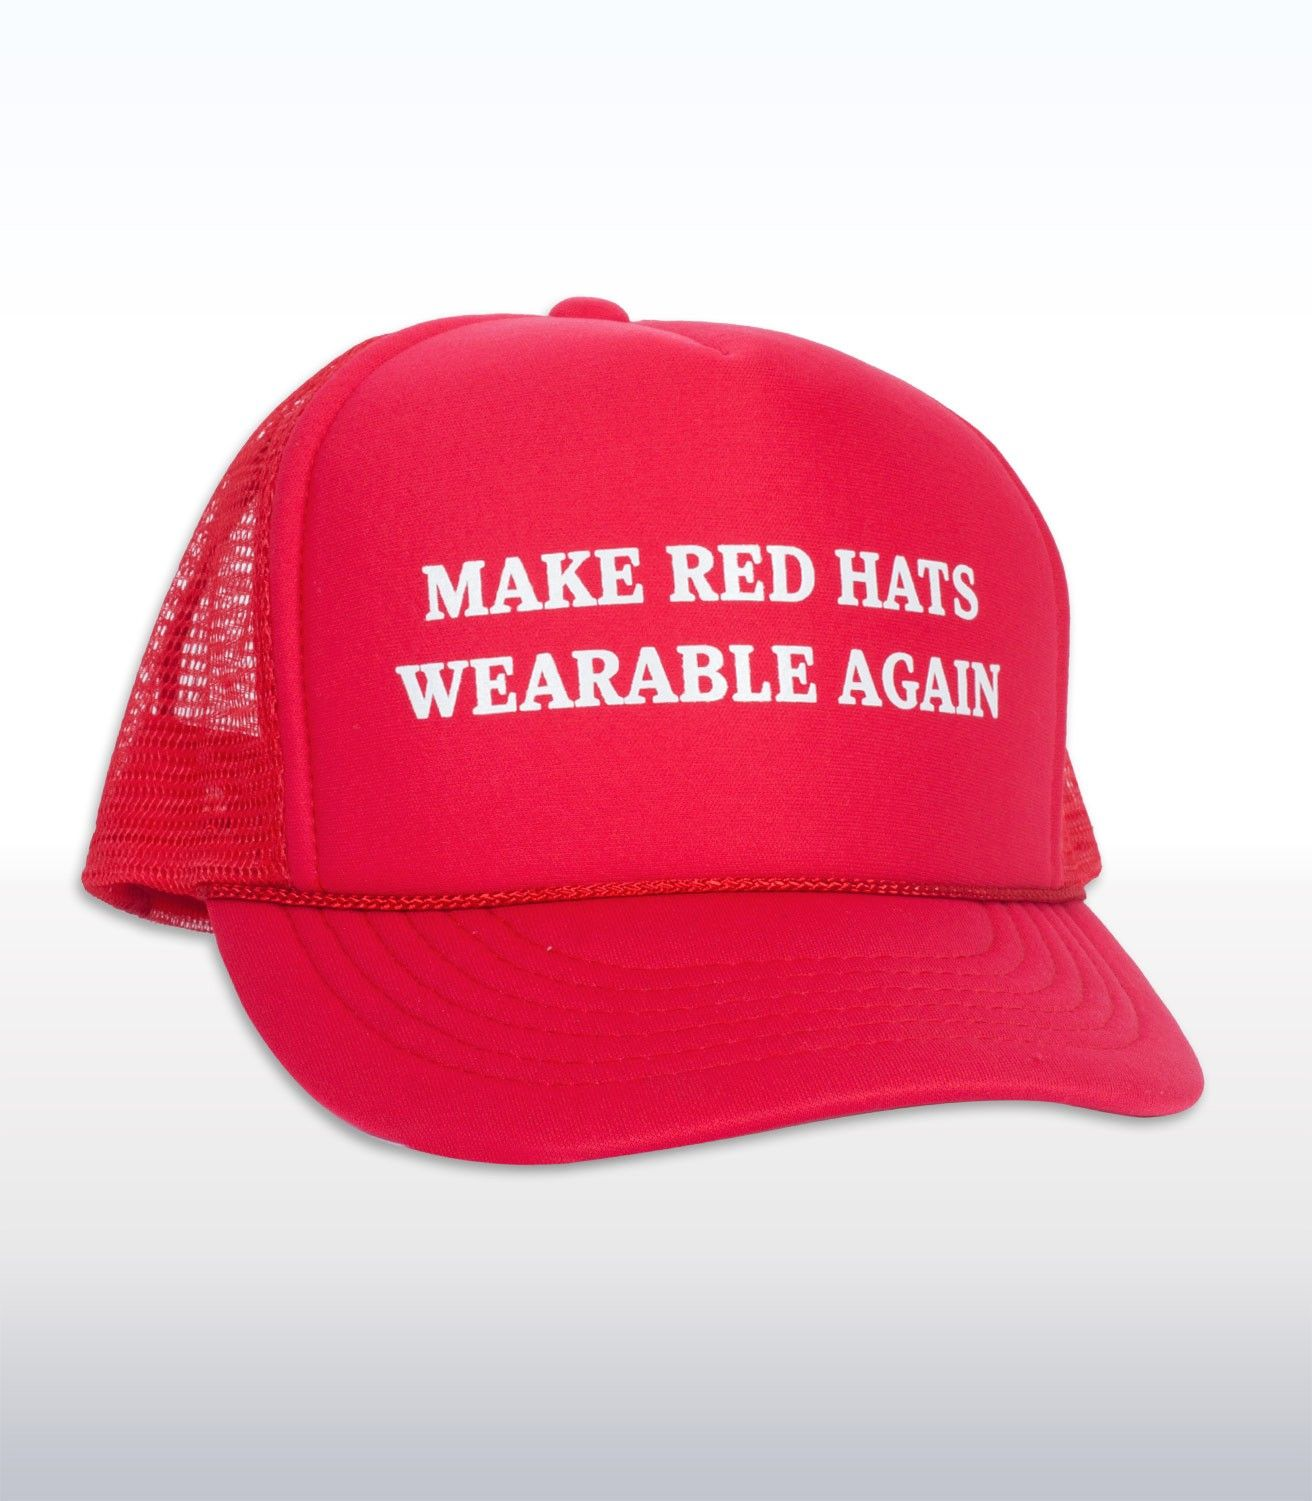 d4d2e644b92 Make Red Hats Wearable Again Hats For Women